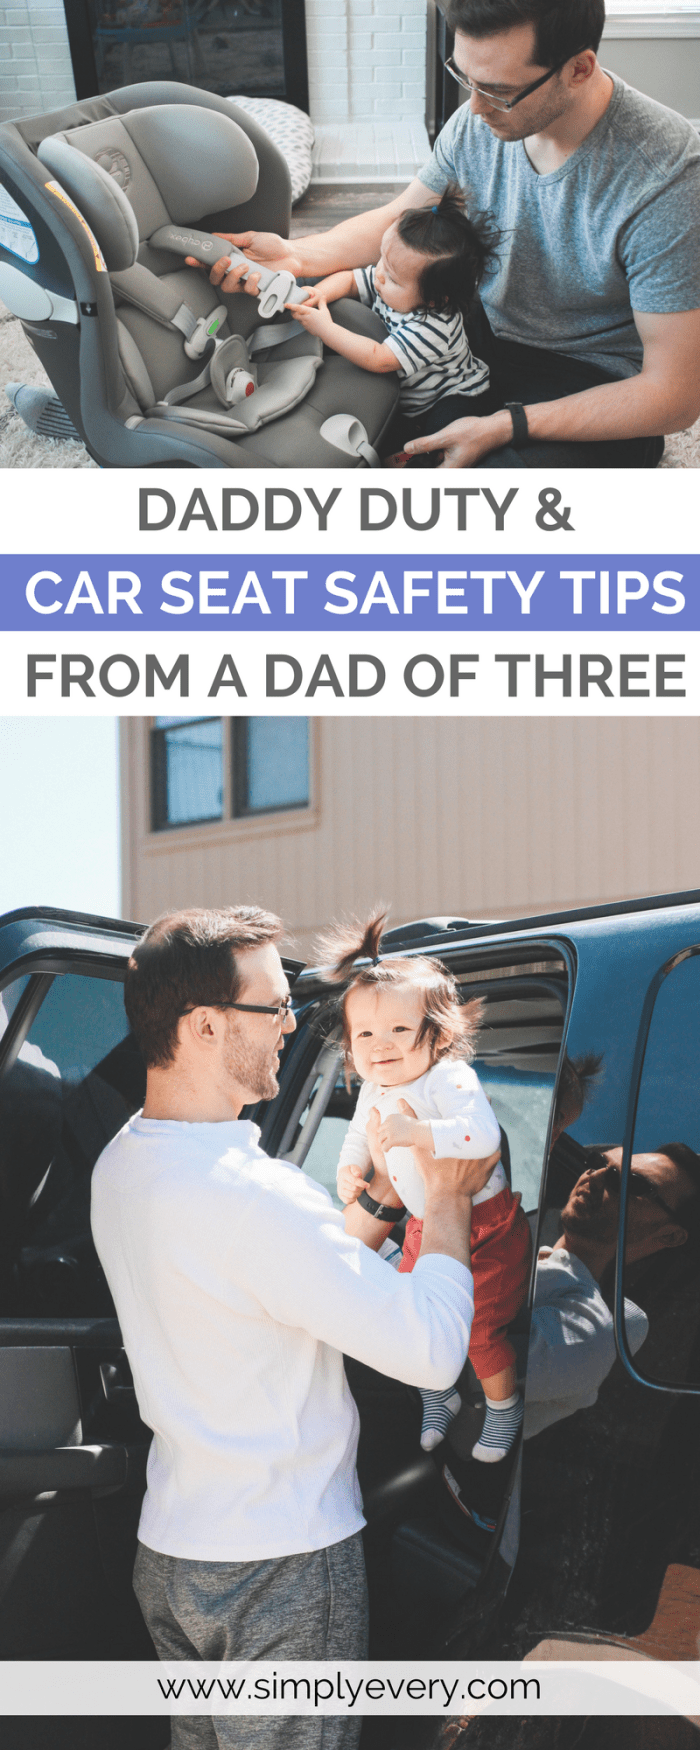 daddy duty car seat safety tips dad of three